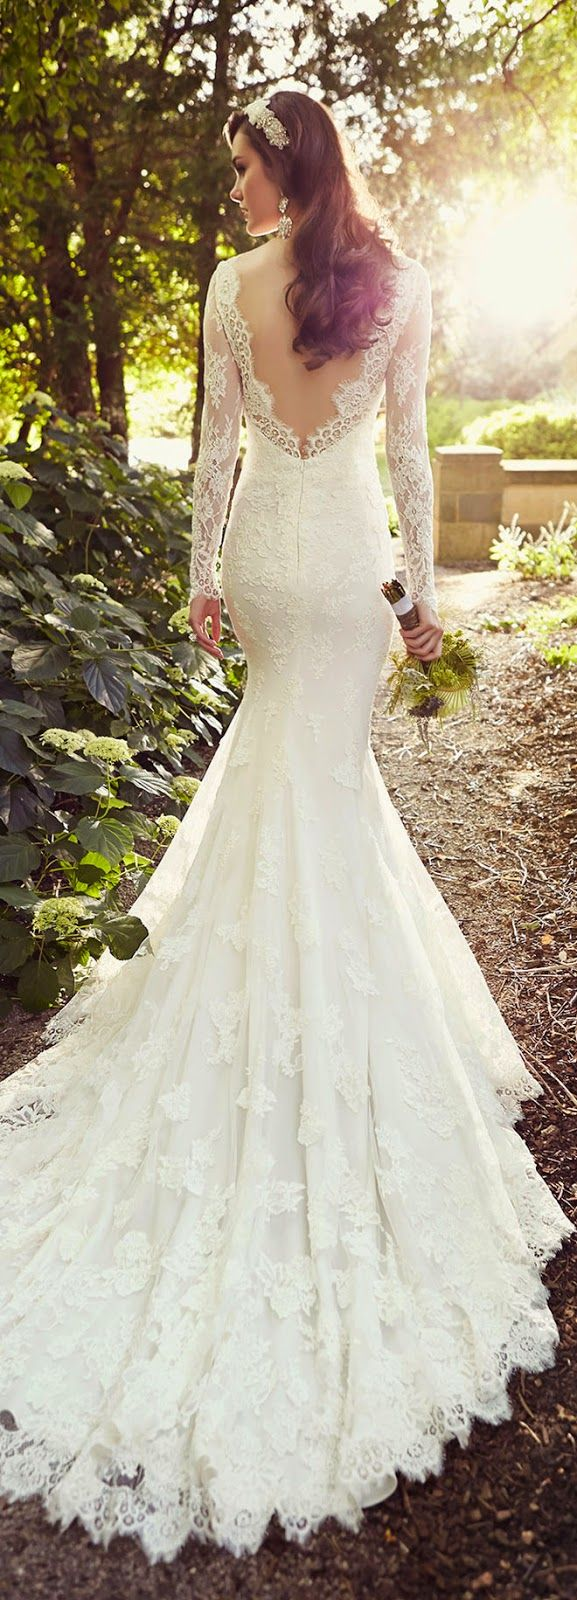 vintage lace wedding dress for fall country wedding